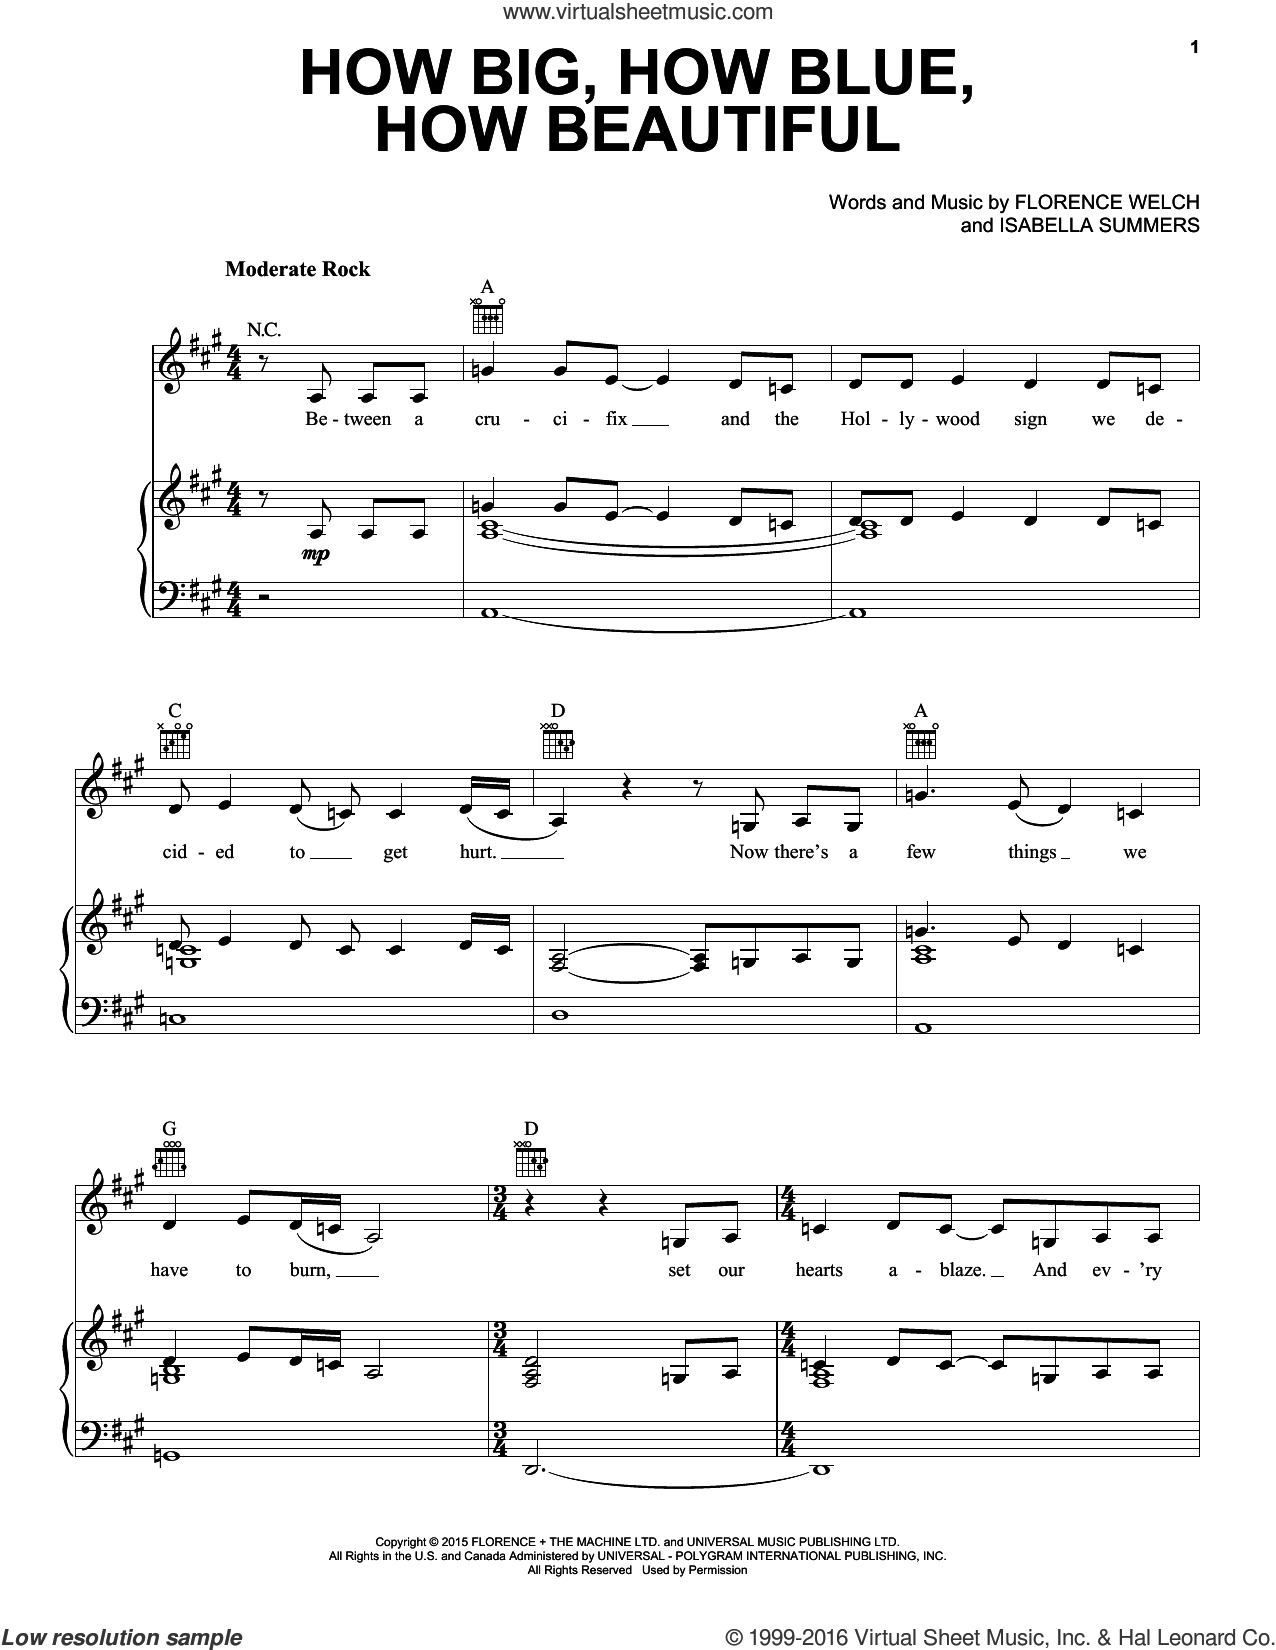 How Big, How Blue, How Beautiful sheet music for voice, piano or guitar by Isabella Summers and Florence Welch. Score Image Preview.